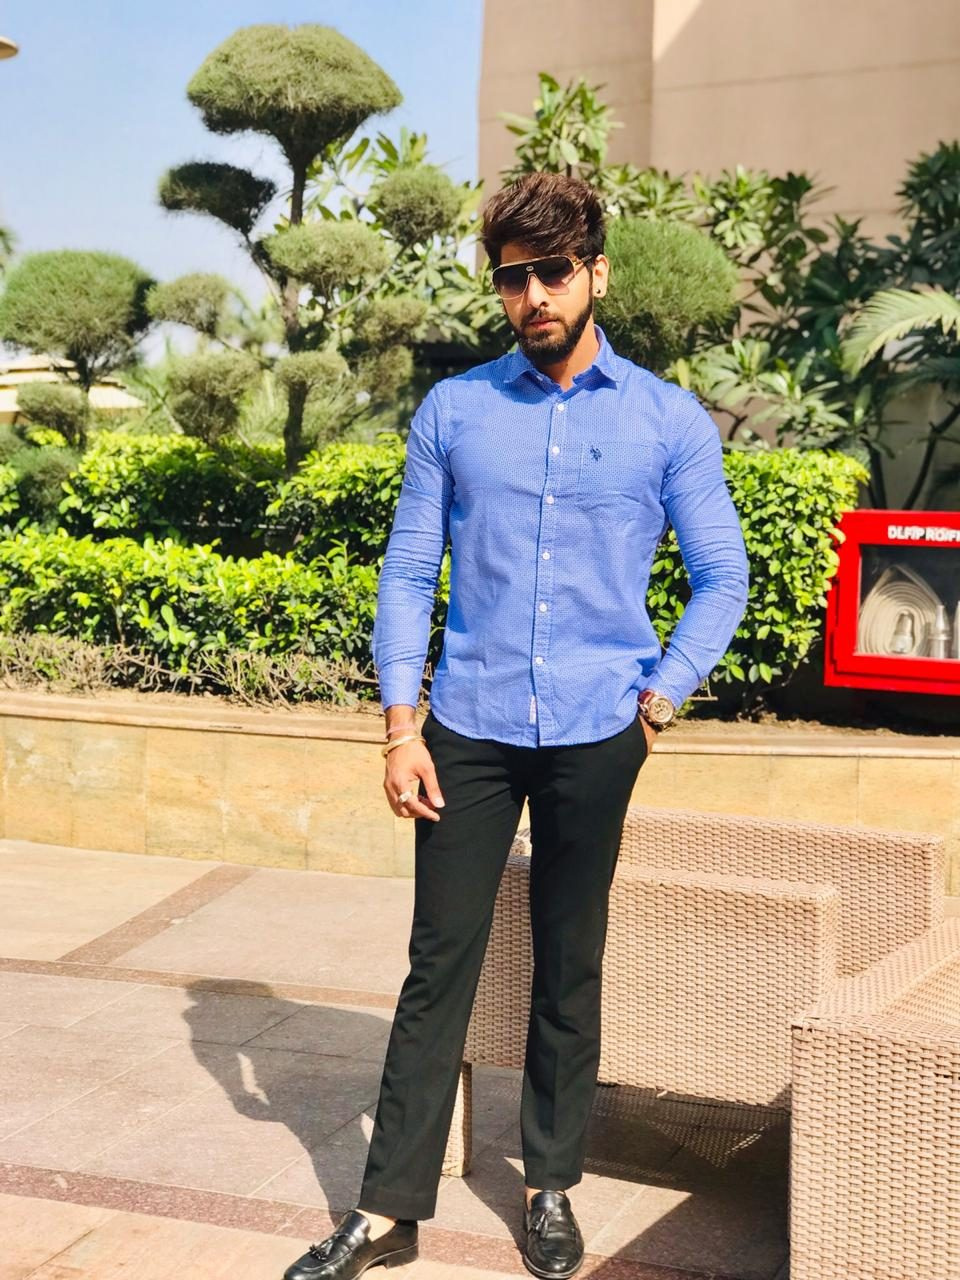 Sahil Choudhary who has the potential of becoming an Actor in Bollywood